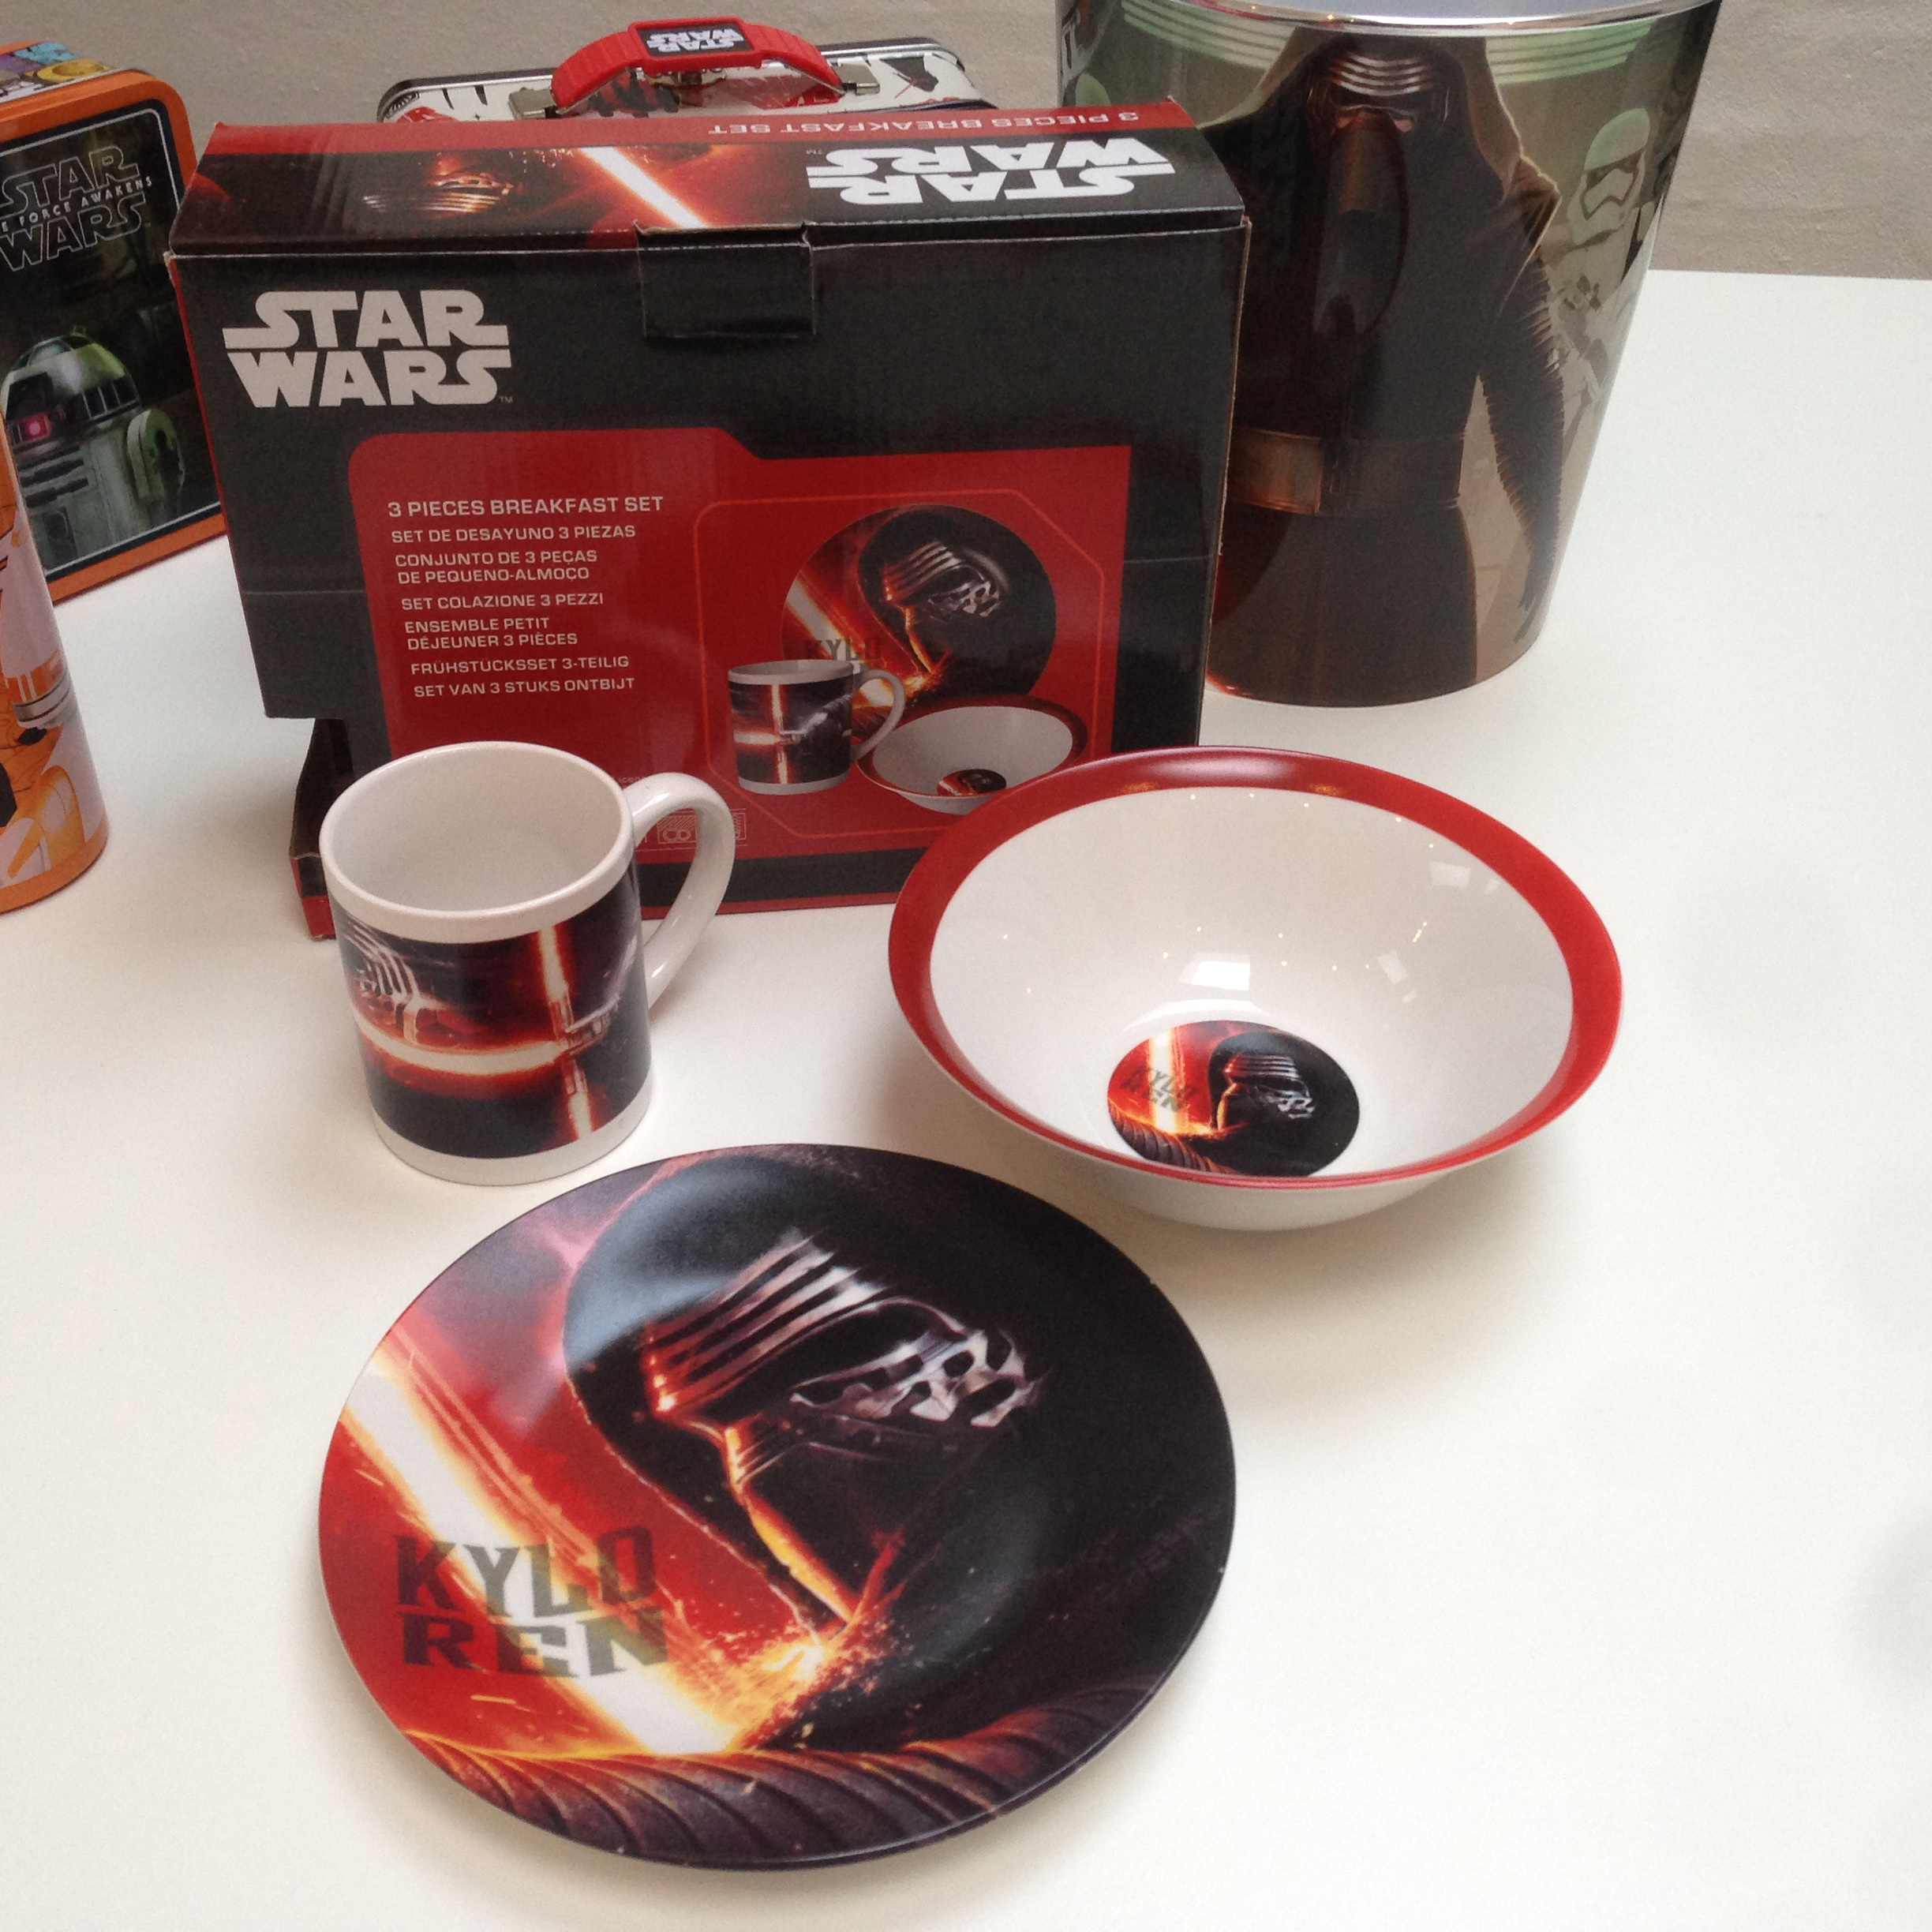 star-wars-the-fairytale-company-fiktion-kultur-tinmadkasser-bb-8-the-force-awakens-1